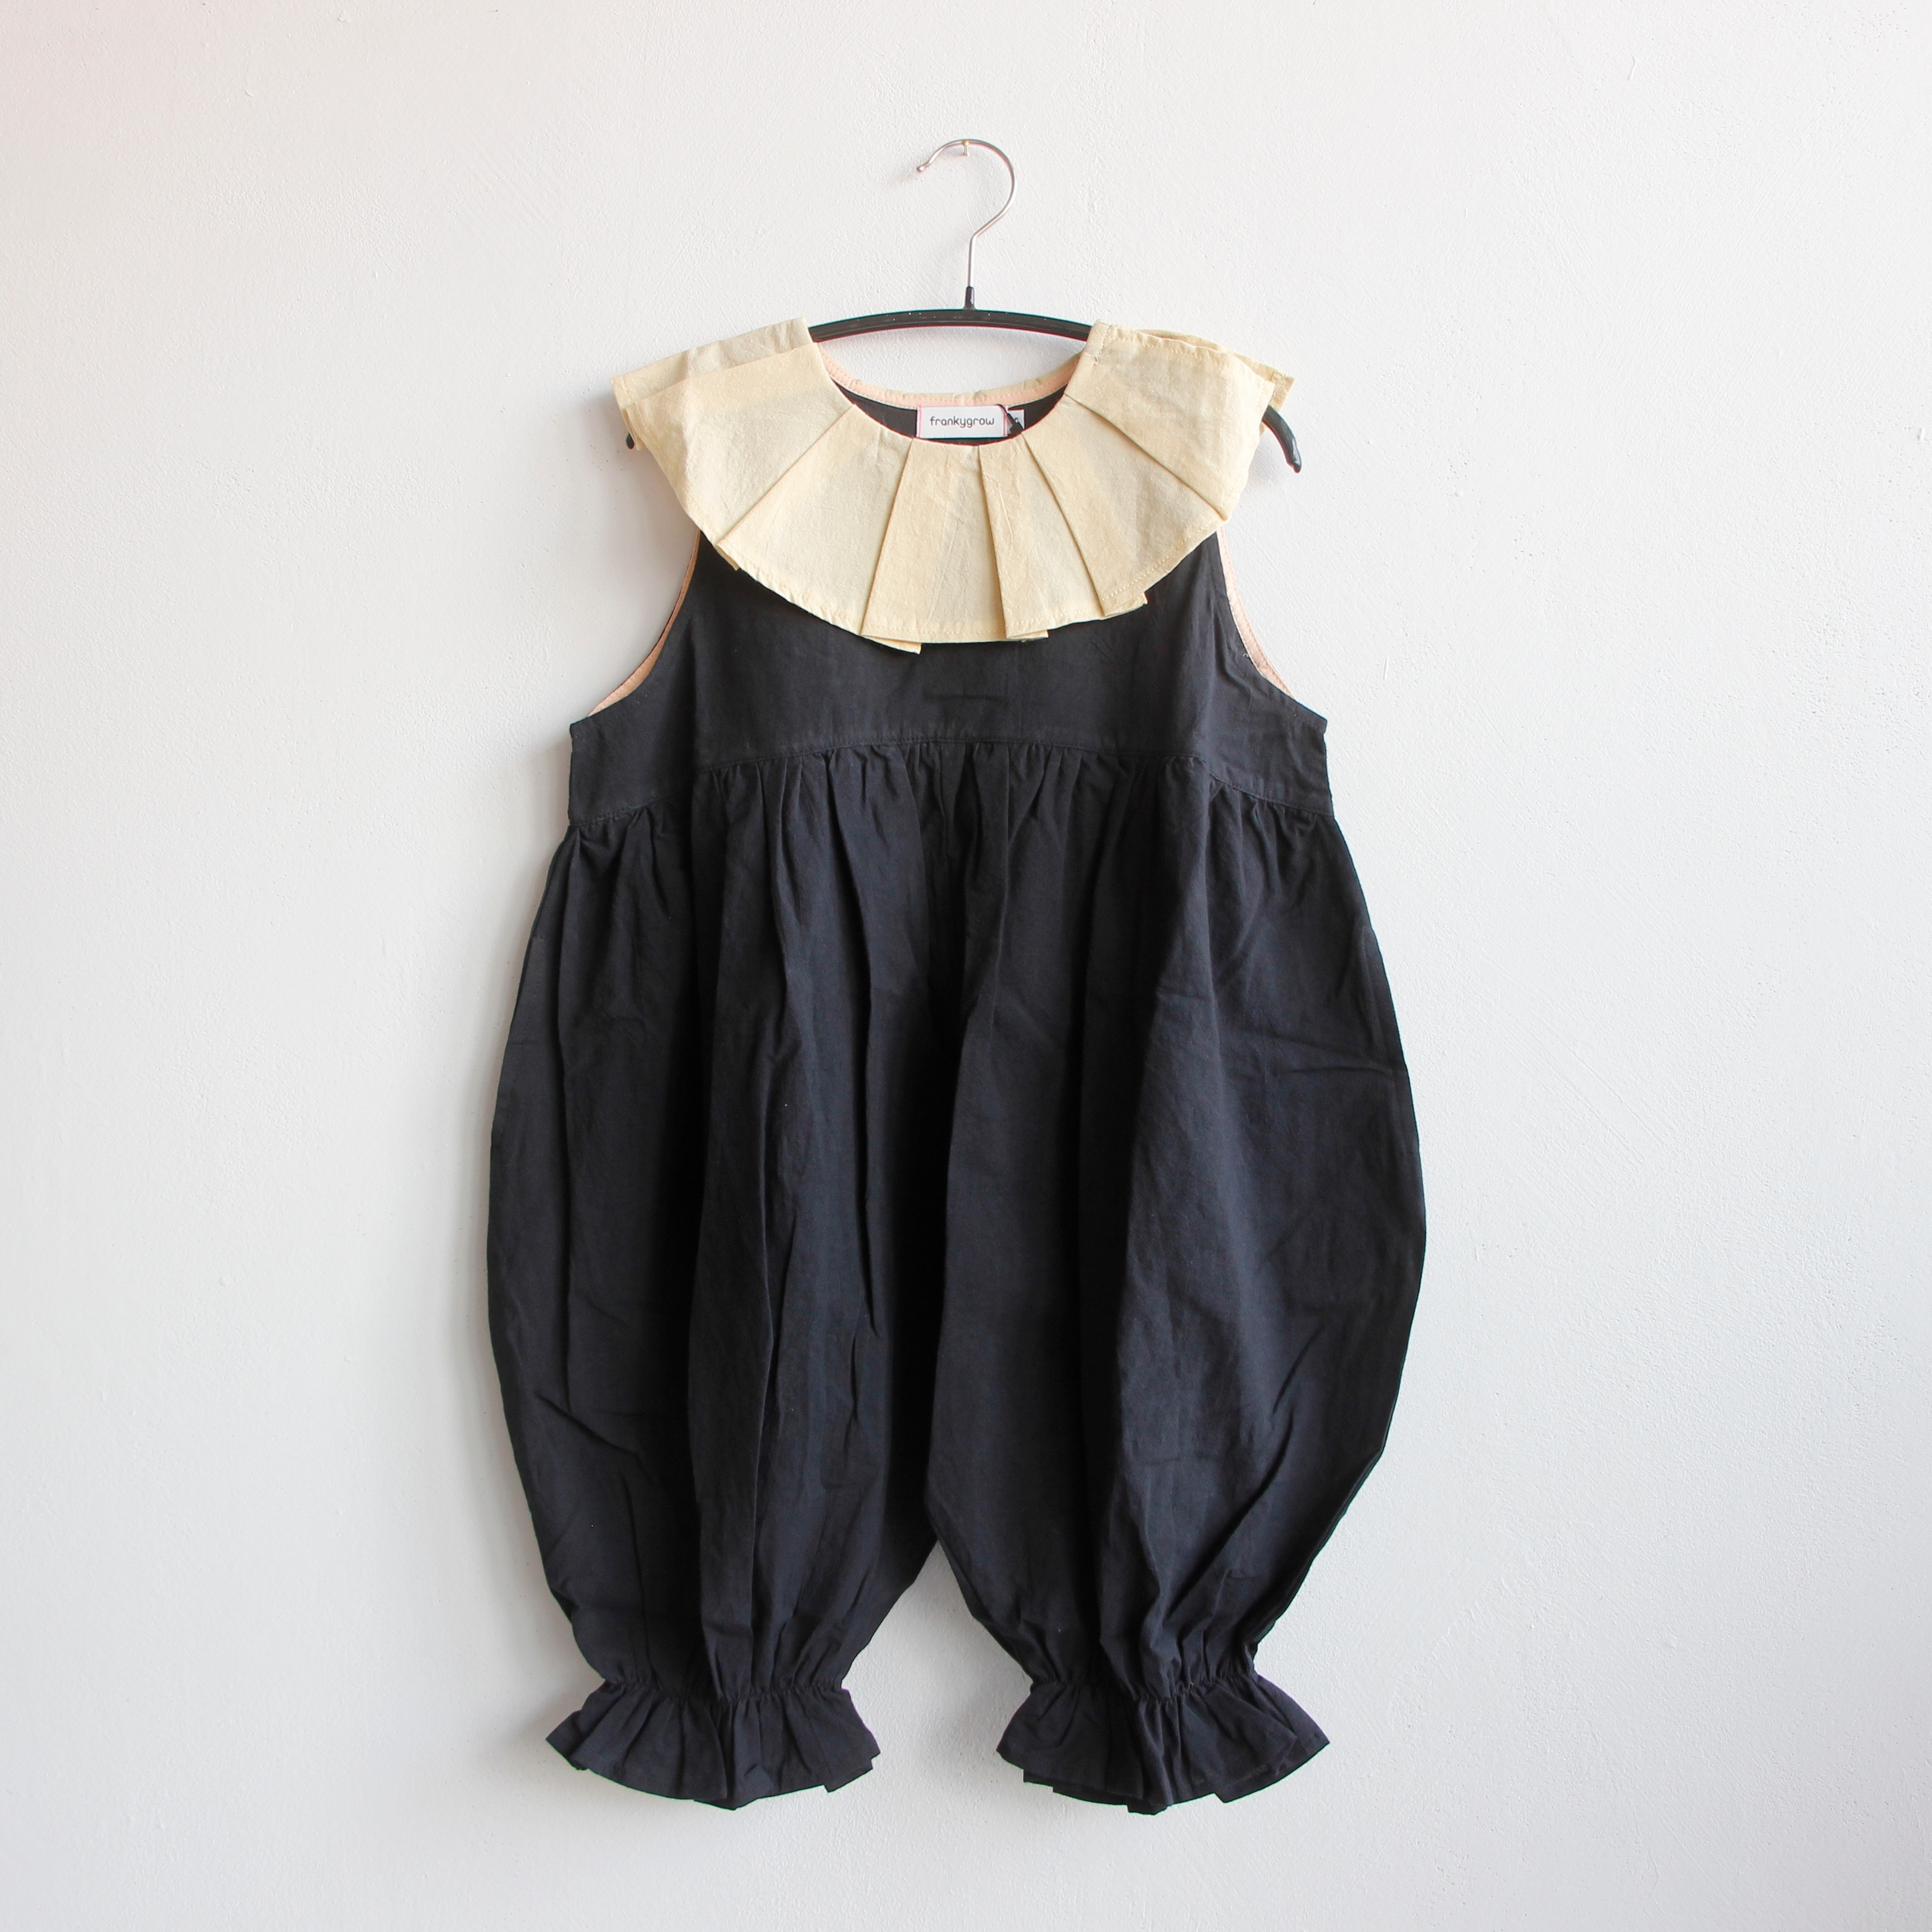 《frankygrow 2020SS》PLEATS COLLAR OVERALL DYED / beige × black × black / S・M・L